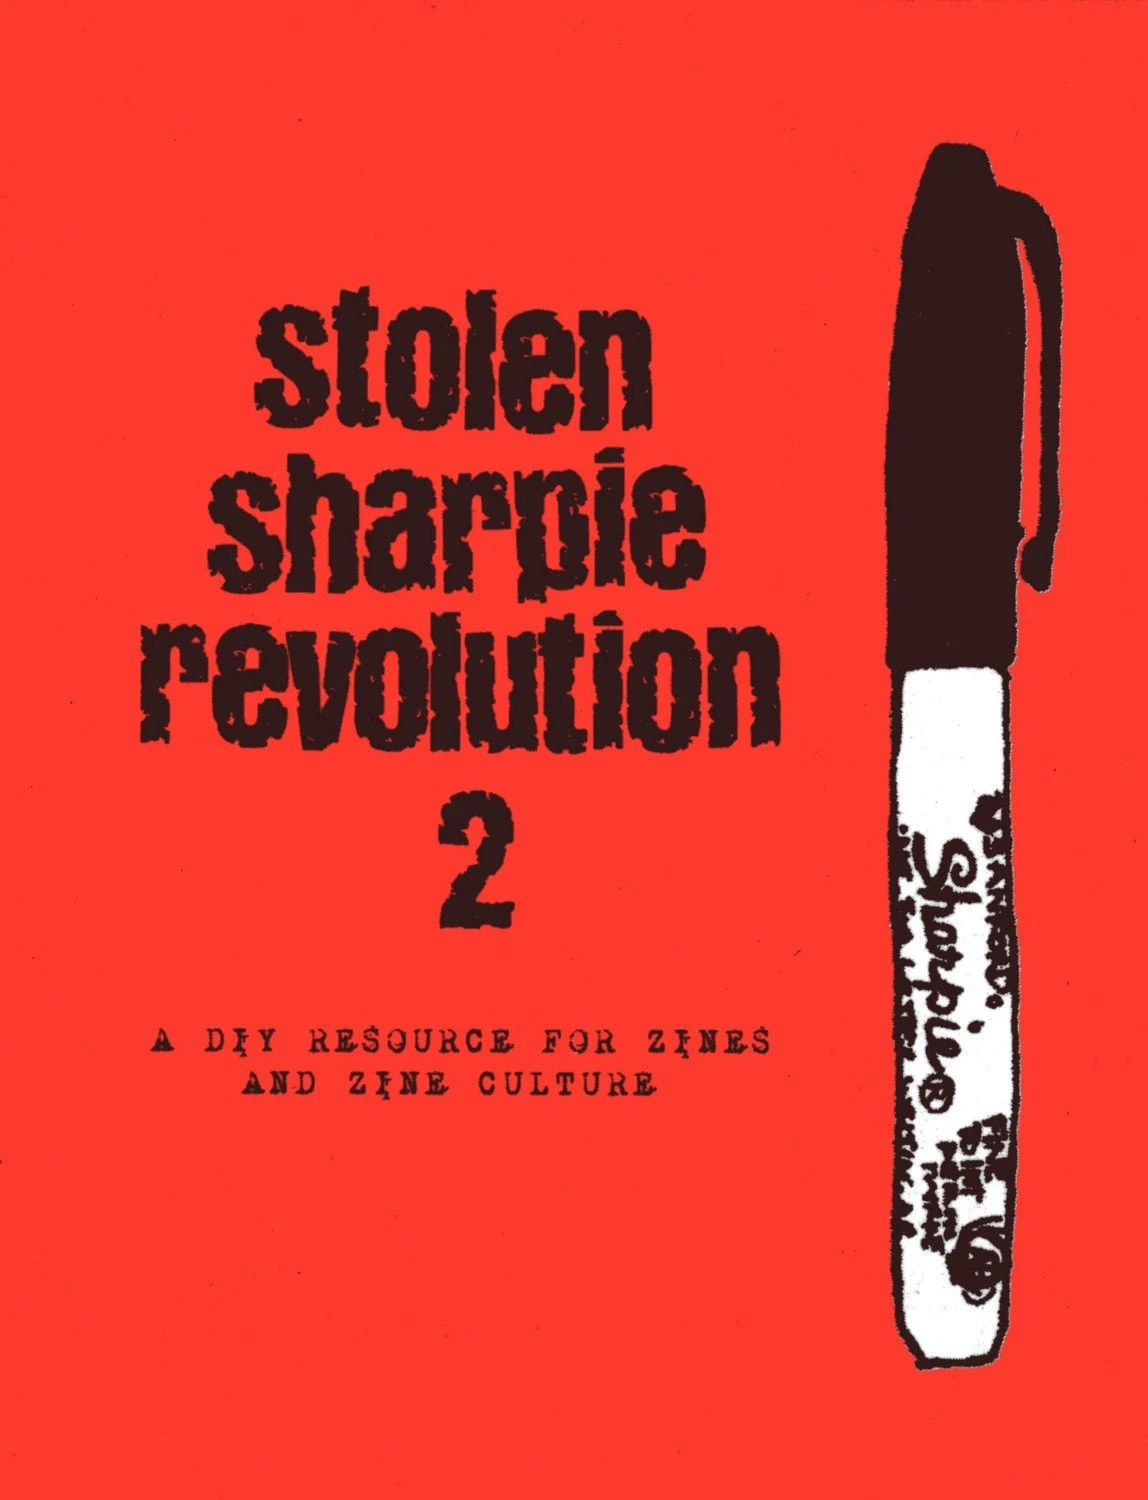 Stolen Sharpie Revolution 2 a DIY guide to zines and zine culture